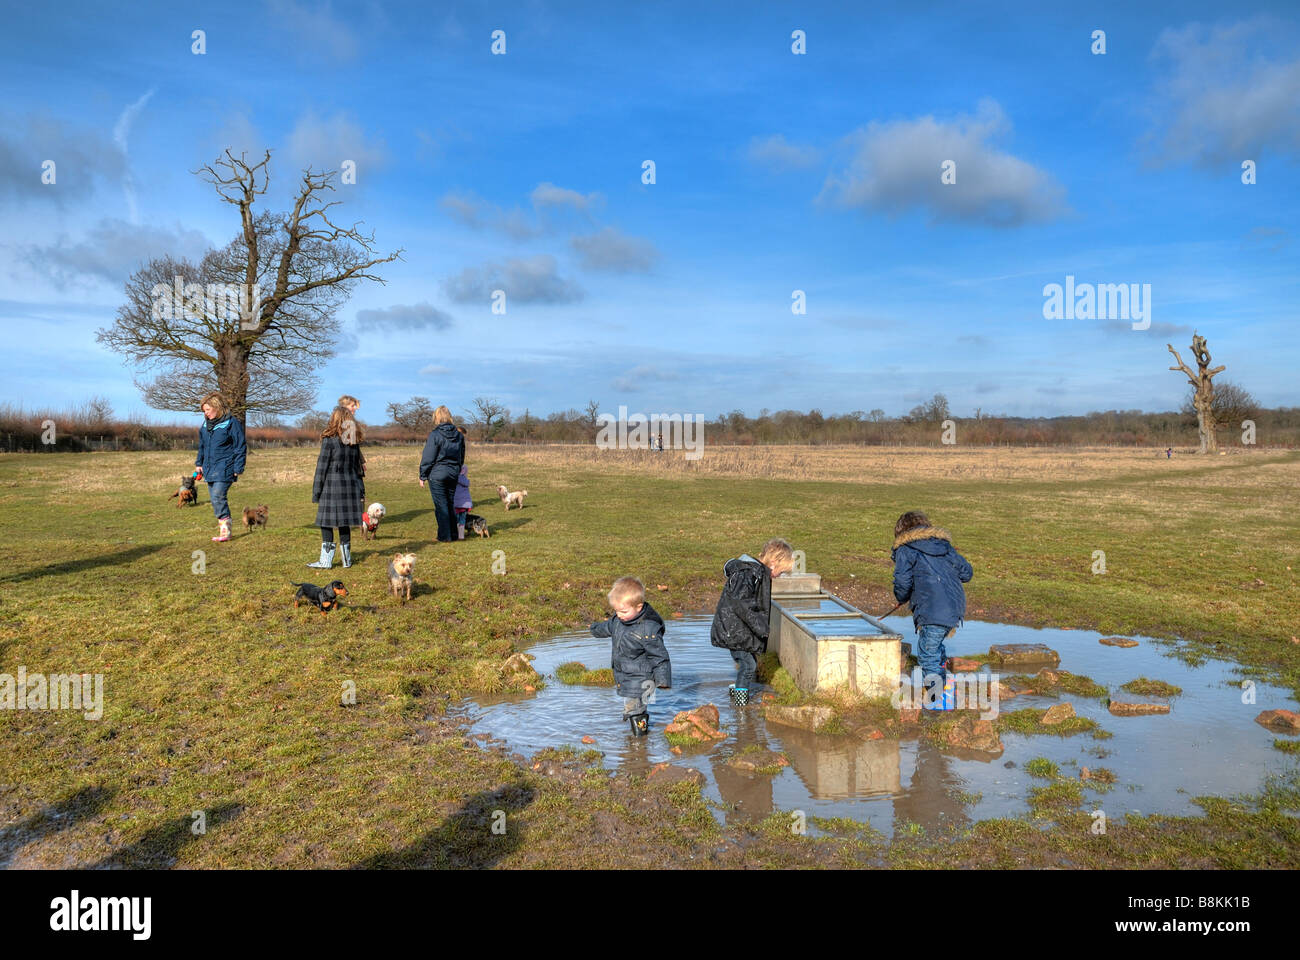 Group of children playing in mud and water Stock Photo